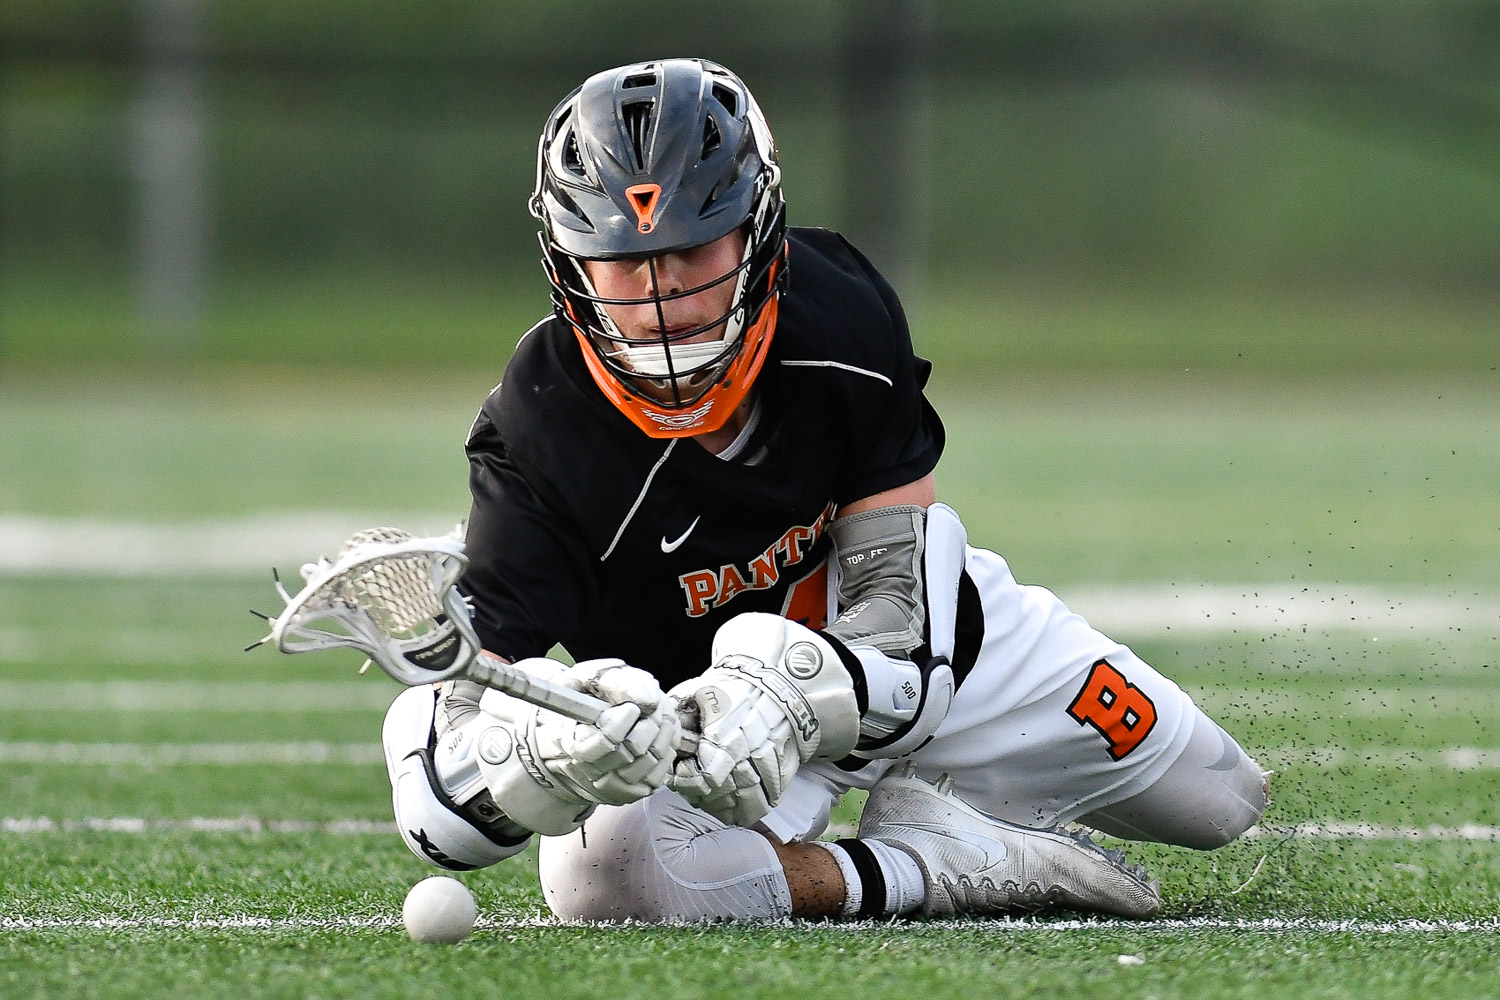 Nikon D500, 1/2000 @ f/2.8, ISO 8000, 300mm  Nick DiLuiso of Beverly reaches for a loose ball during their Division 2 North tournament game win over Wakefield, 7-6, at Concord Carlisle High School, Saturday, June 10, 2017. [Wicked Local Staff Photo / David Sokol]